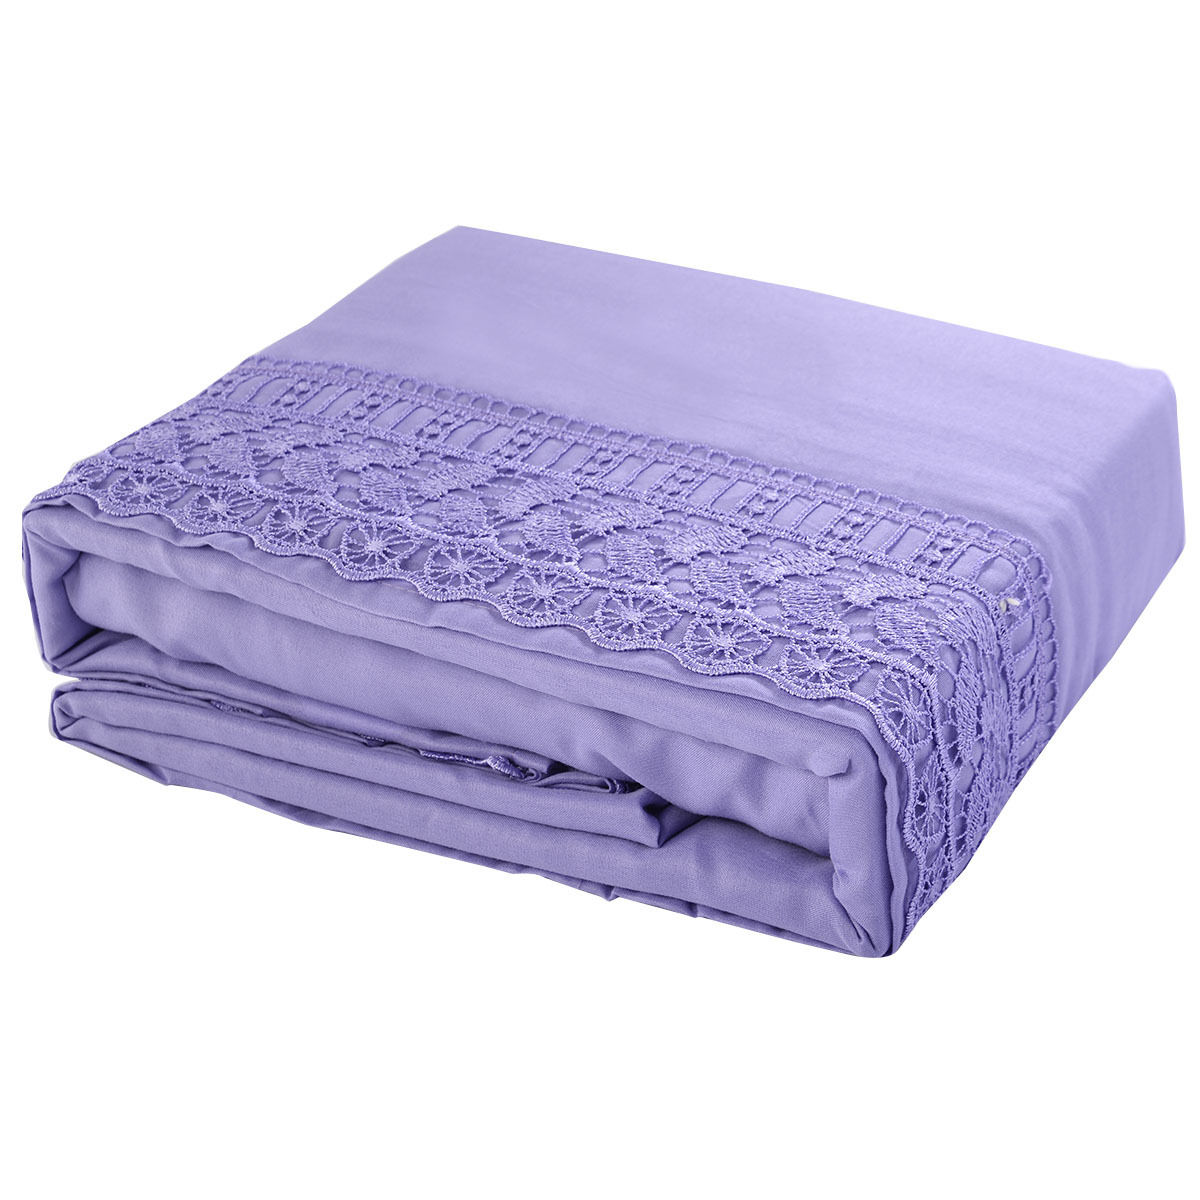 1600-Count-4-Piece-Bed-Sheet-Set-Deep-Pocket-6-Color-5-Size-Chemical-Lace-New thumbnail 23